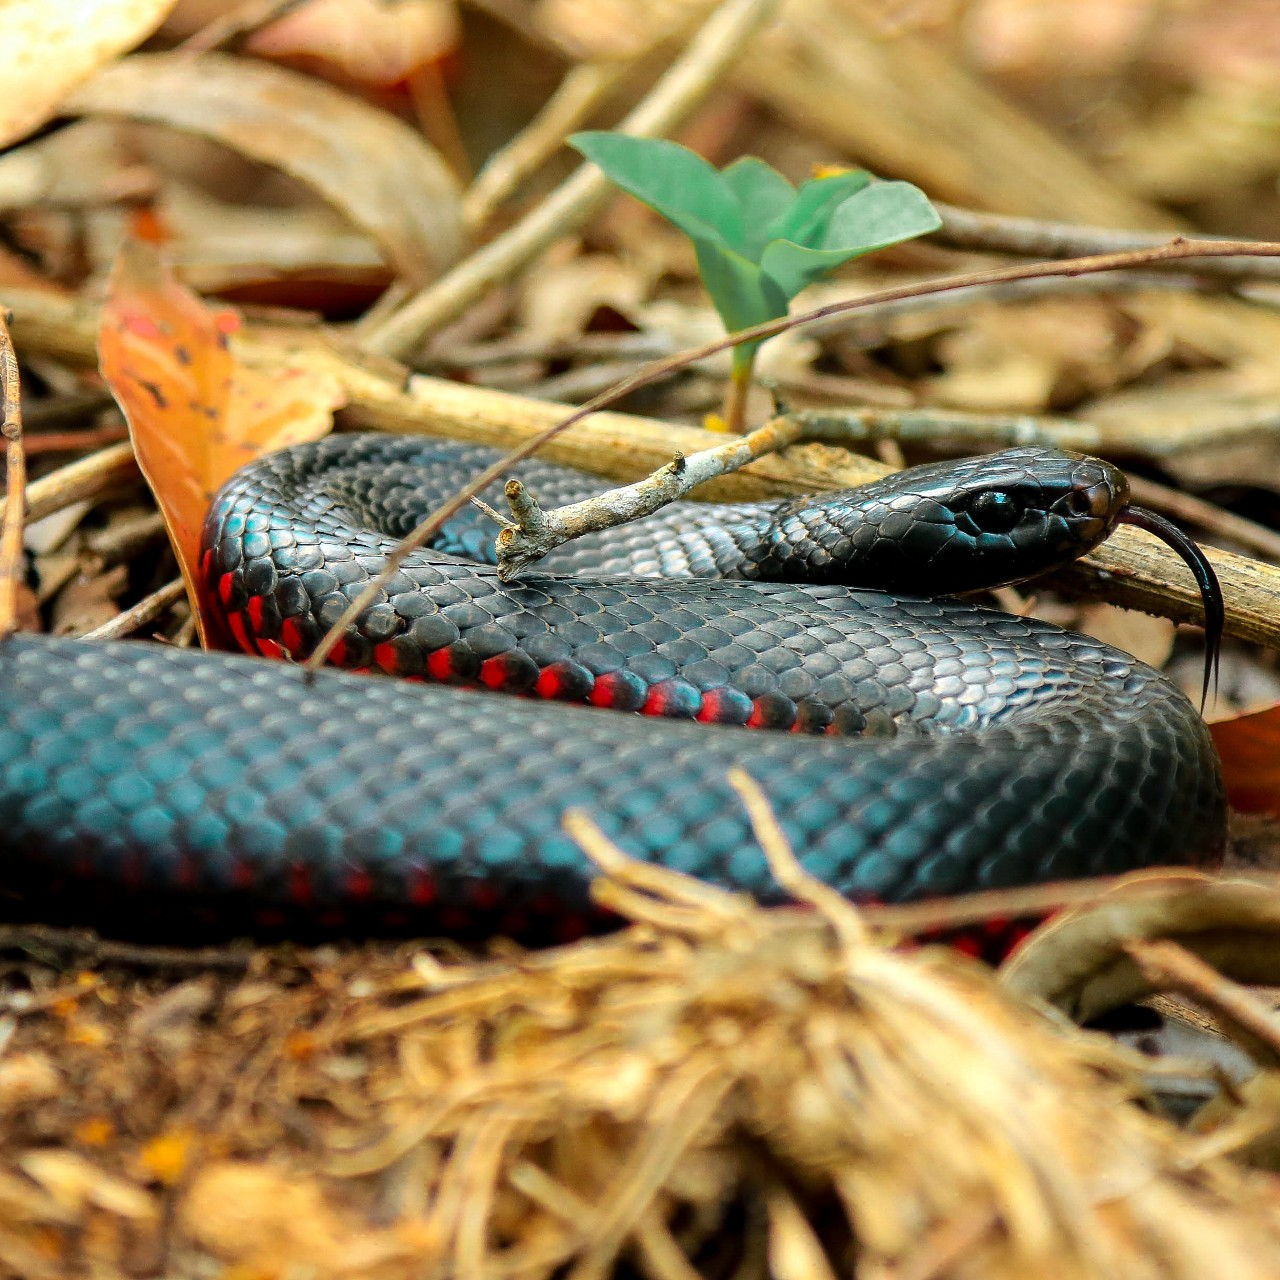 a red bellied black snake on the ground